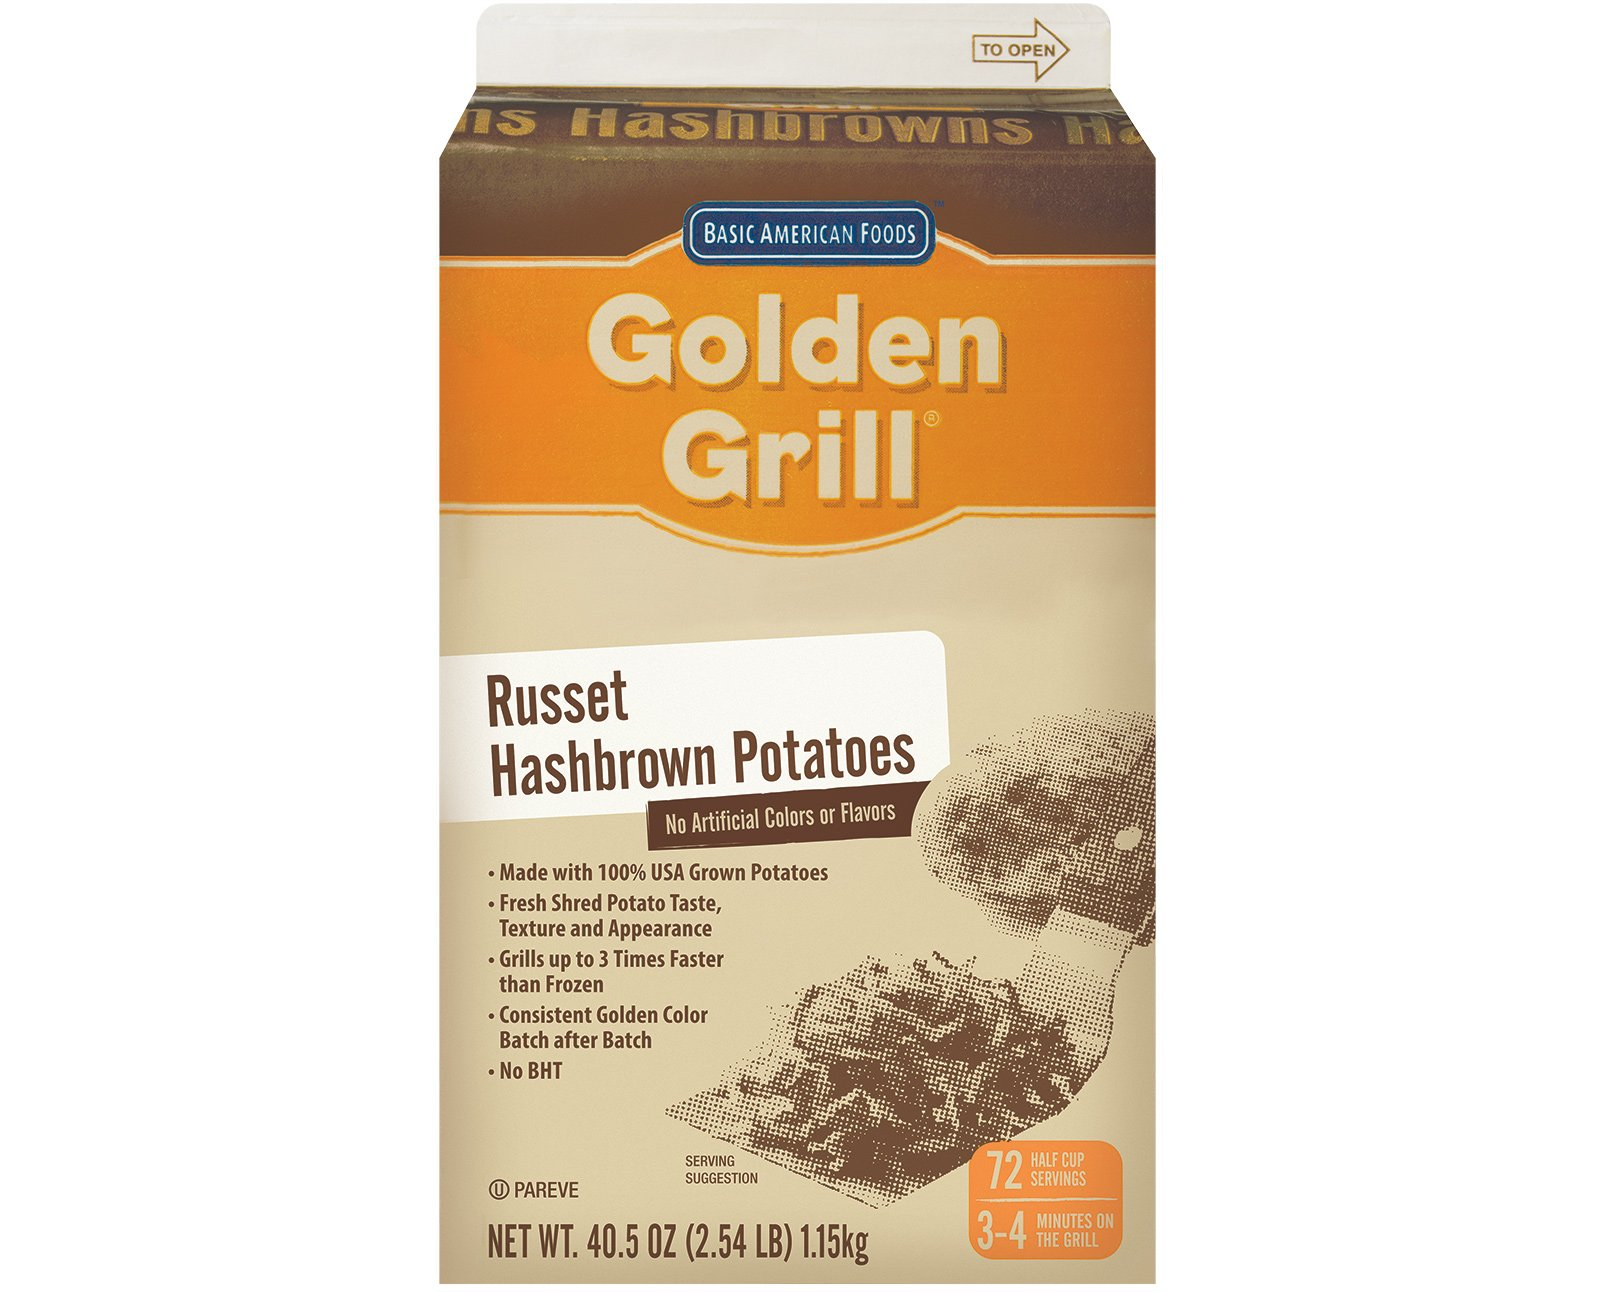 Golden Grill, Premium Hashbrown Potatoes, 432 servings, 40.5 oz. (6 Count) by Golden Grill